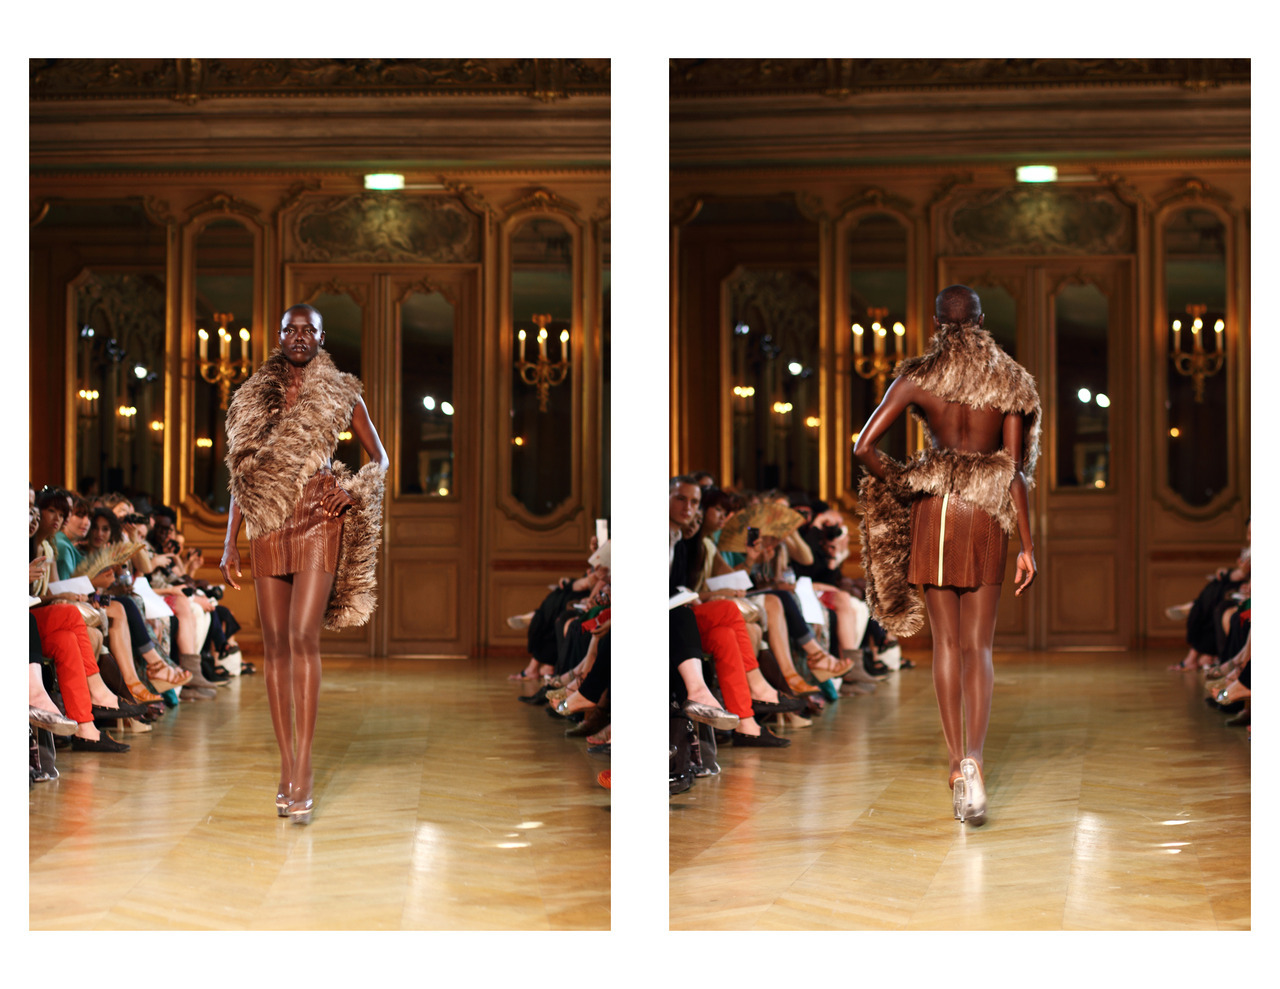 Serkan Cura Haute-Couture show.  Fall/Winter 2012 collection.  Paris Haute Couture Fashion Week, July 2012.  www.bewaremag.com